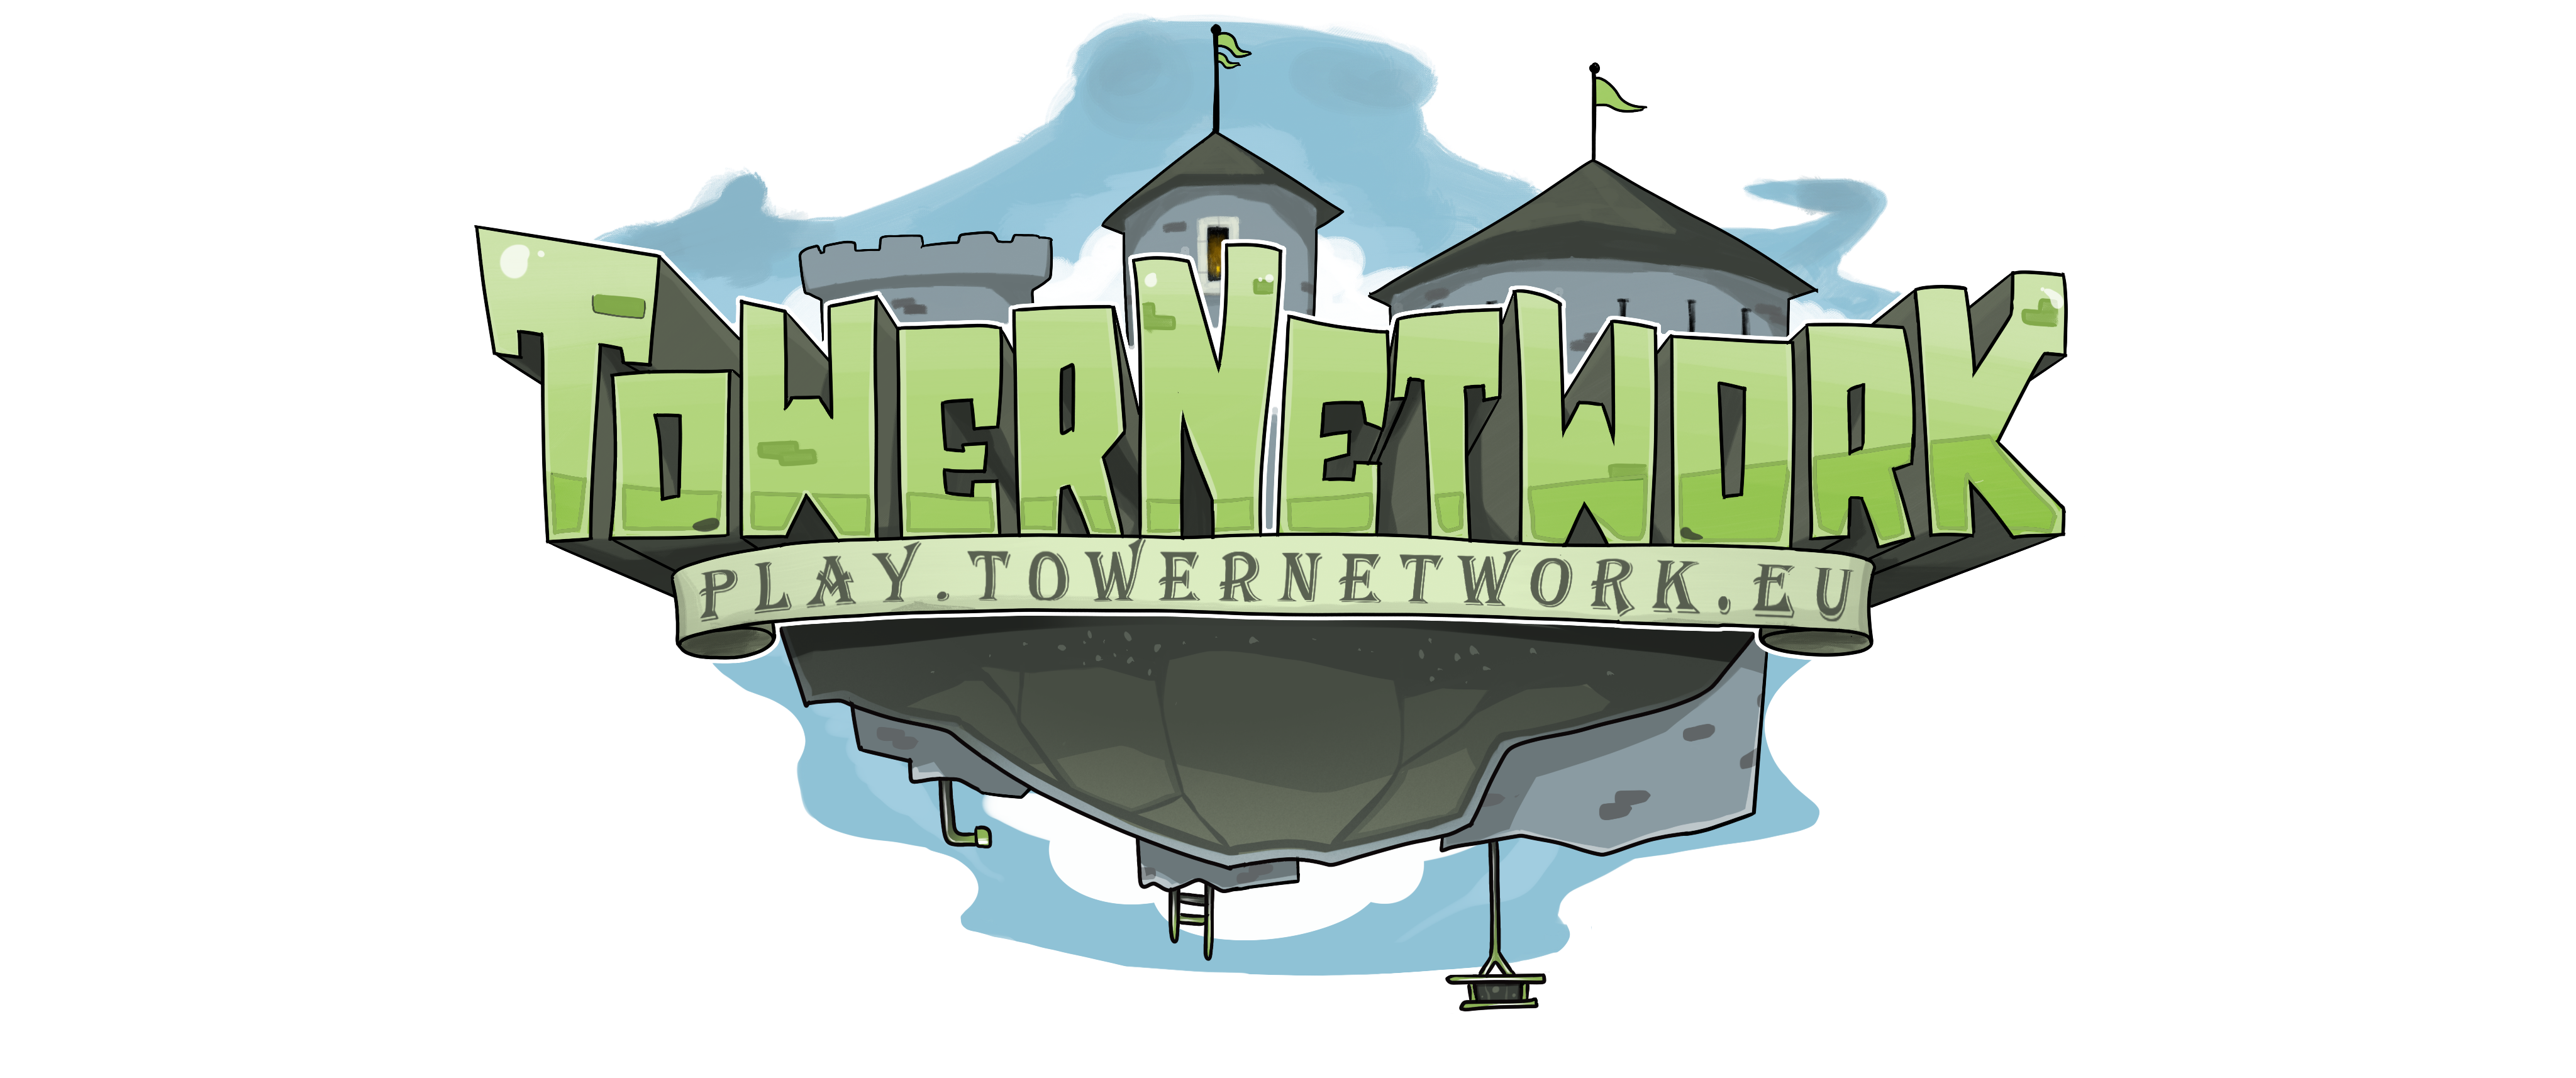 TowerNetwork logo